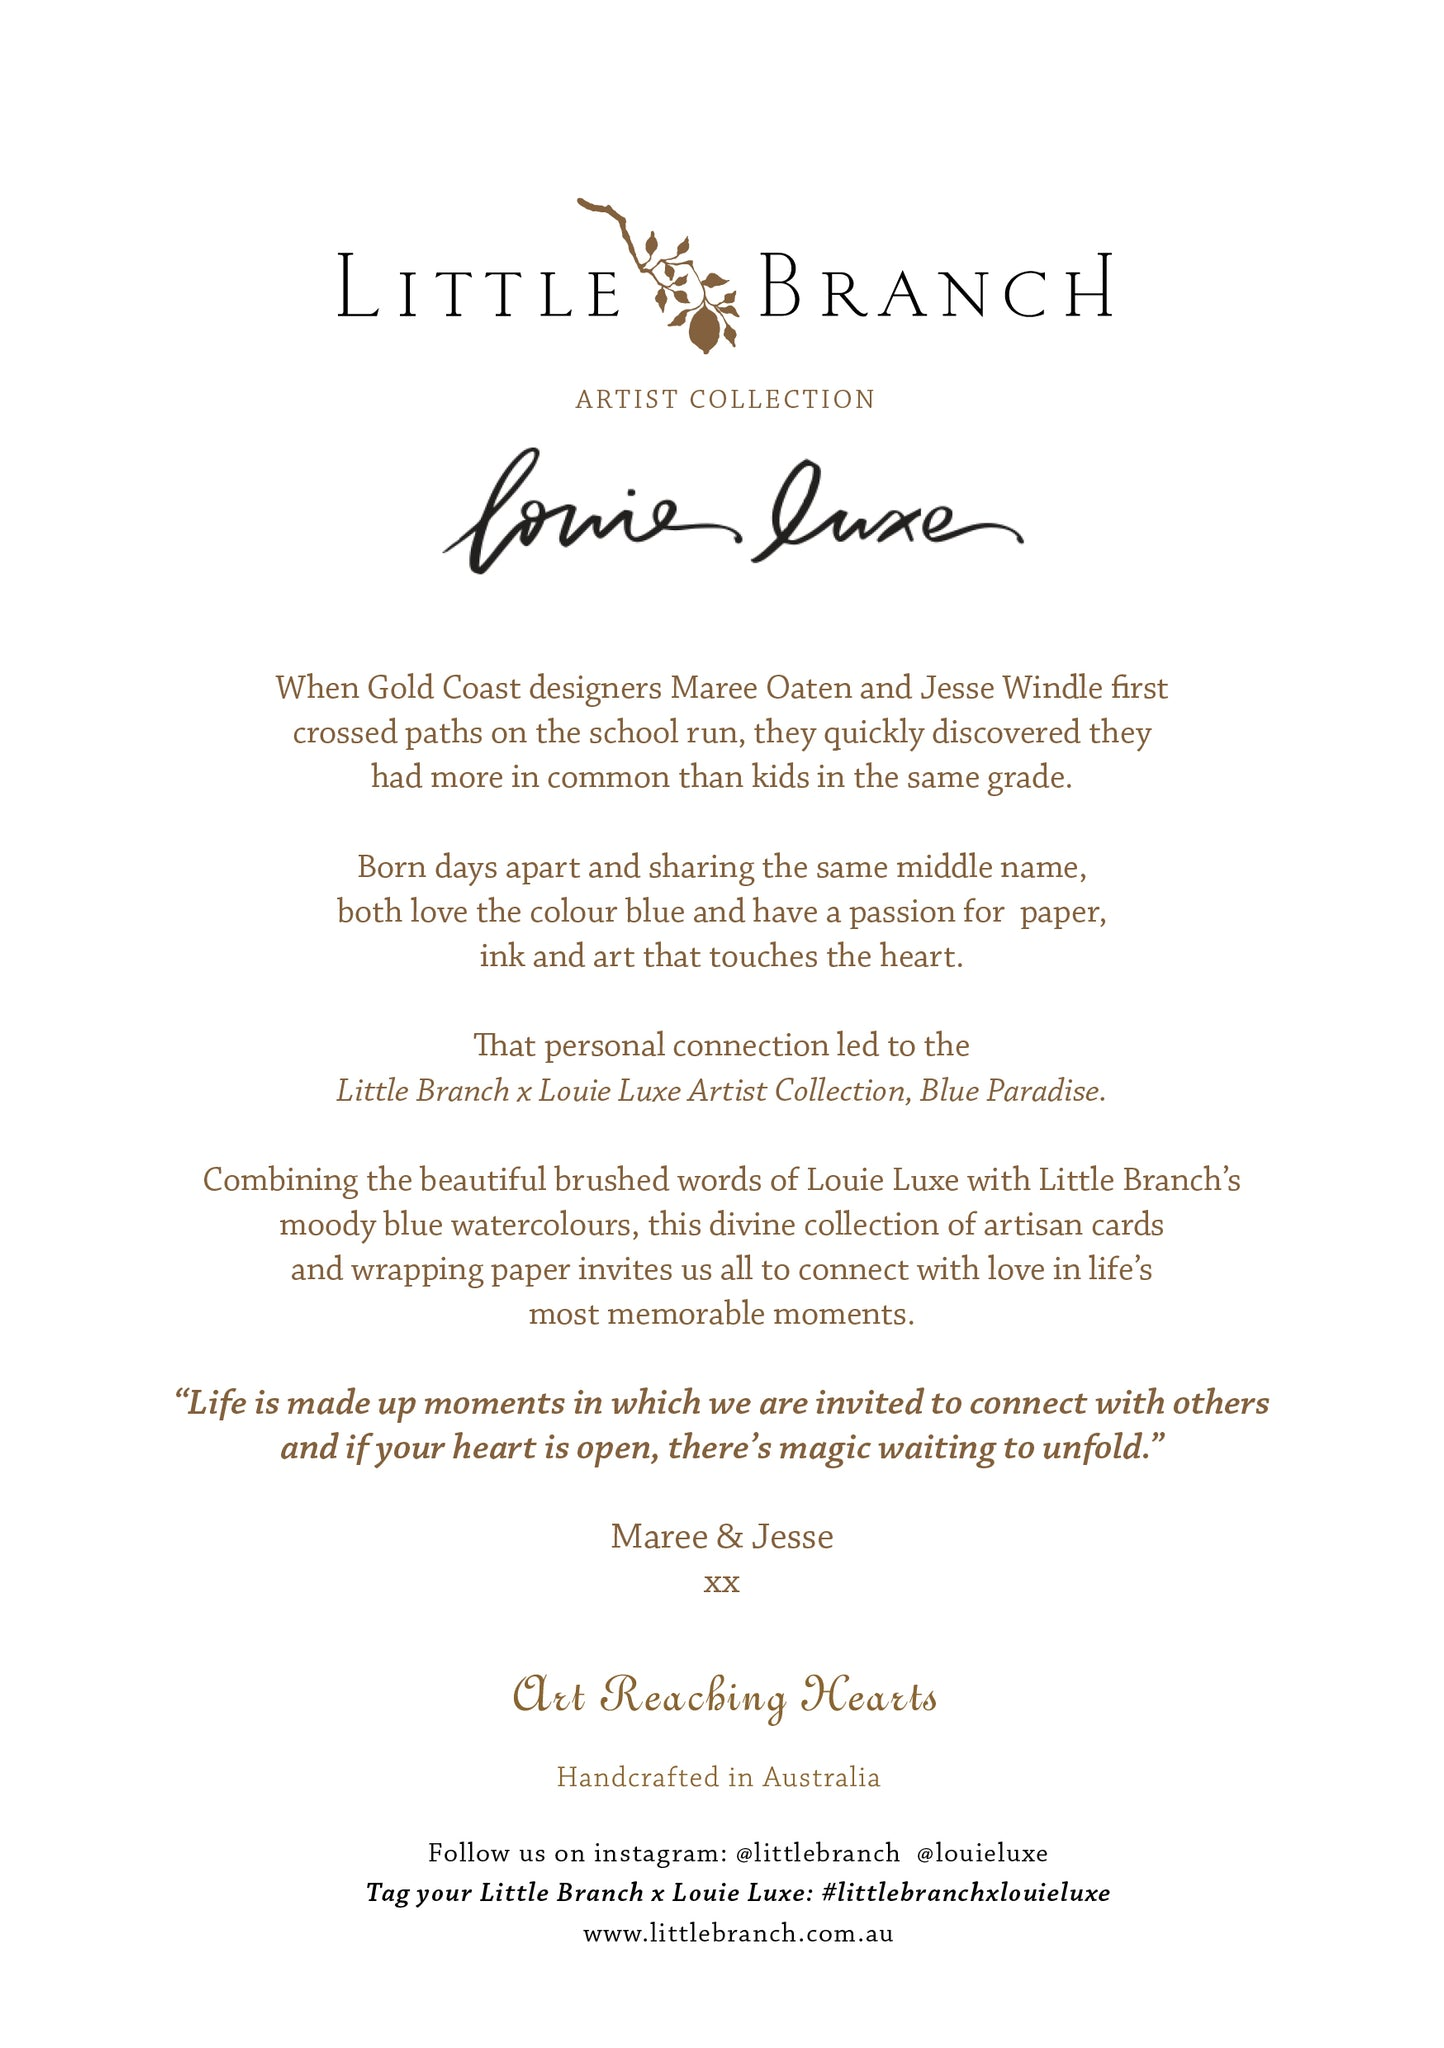 Little Branch x Louie Luxe Announcement